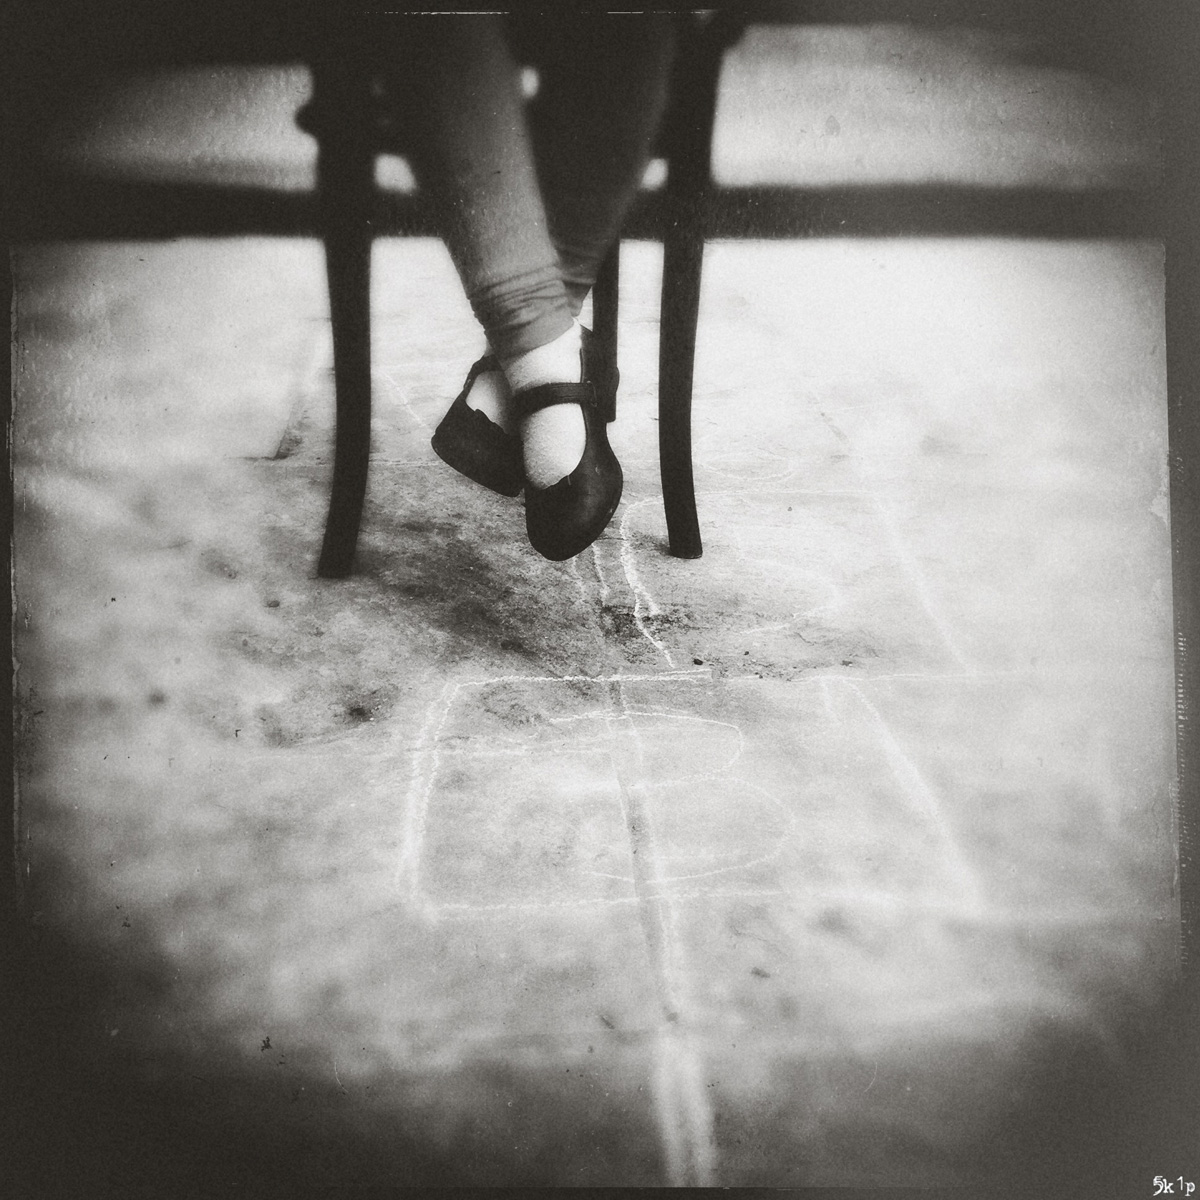 iphoneography - sitting in a chair